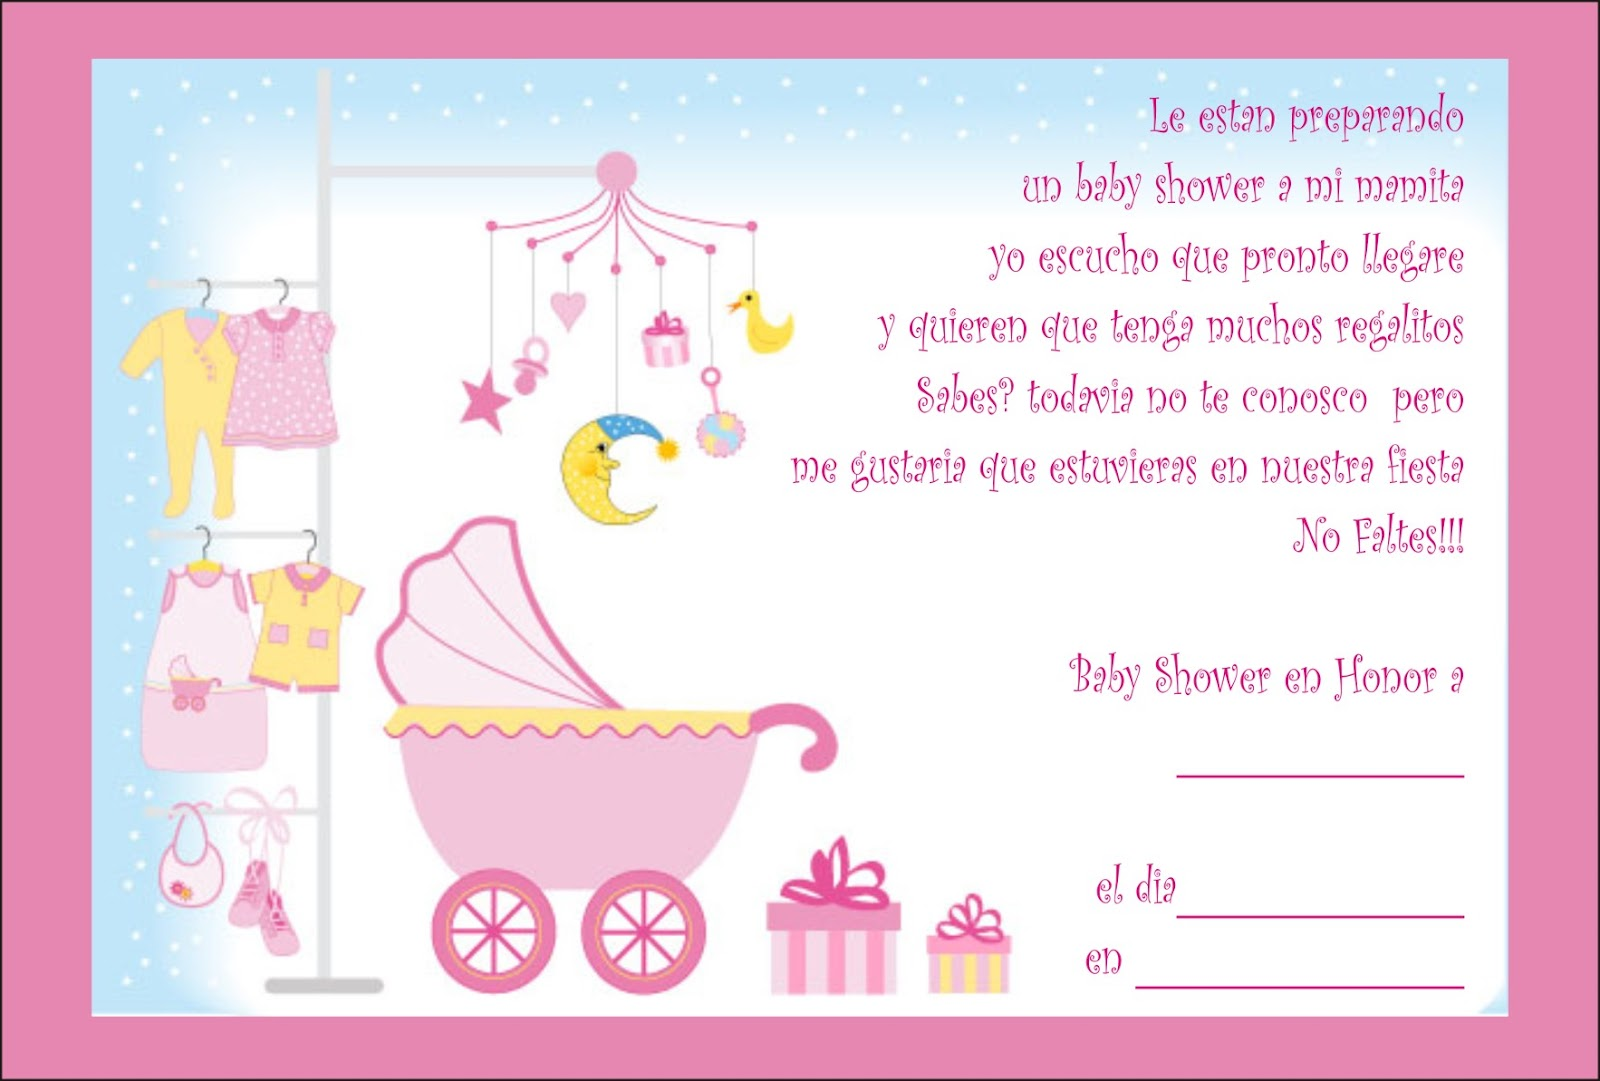 Decoracion Para Fiesta De Baby Shower.Invitaciones Para Baby Shower Also Adornos Para Baby Shower